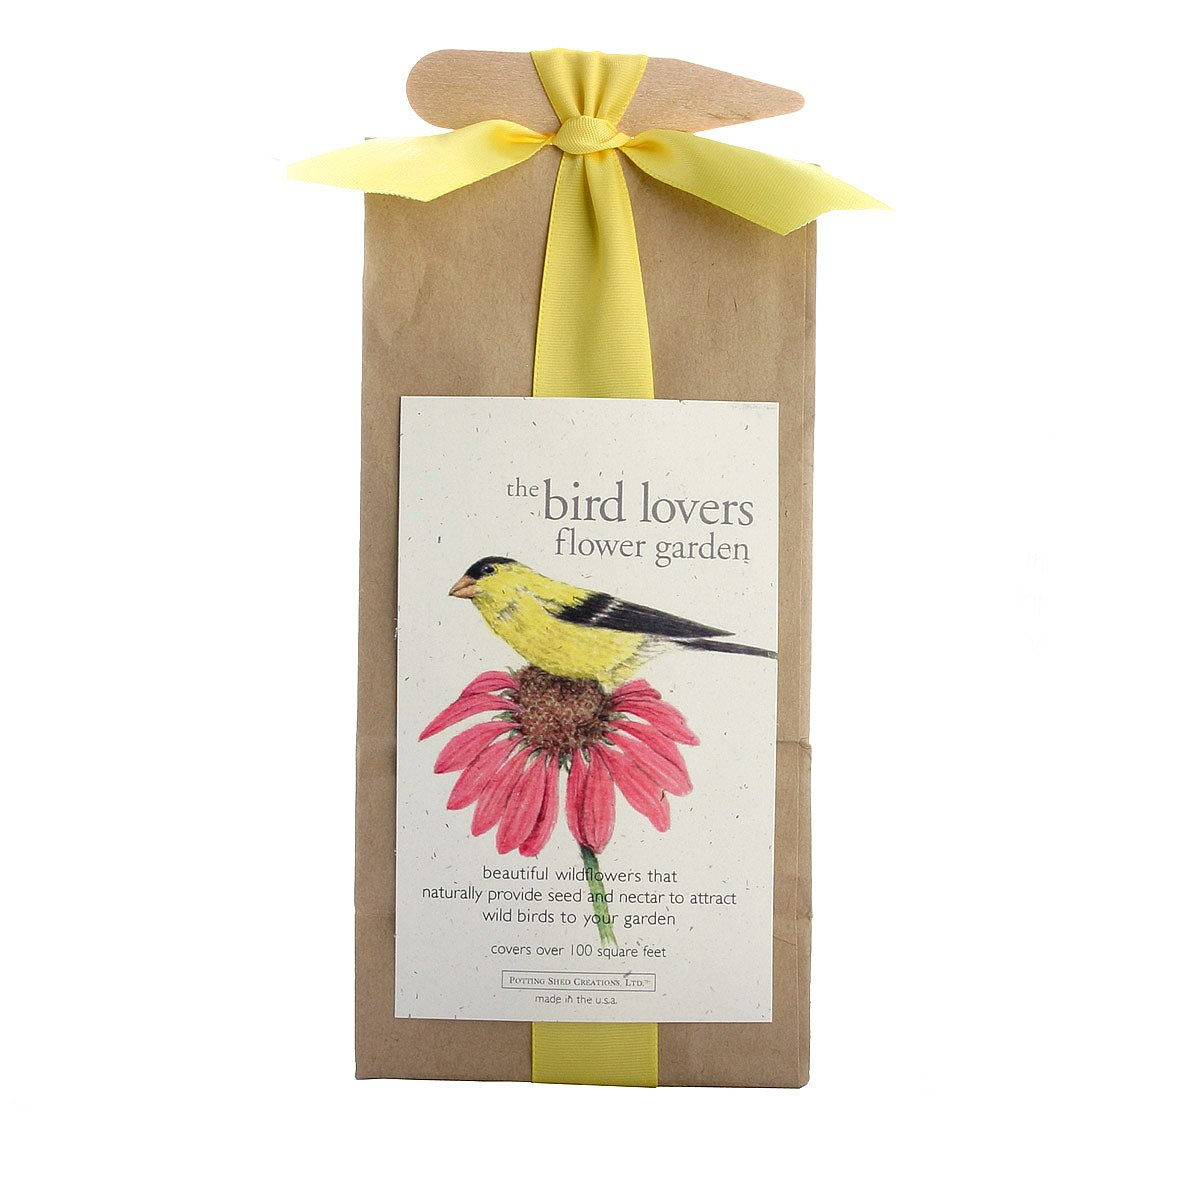 scatter garden kits flower seed sets attract hummingbirds or